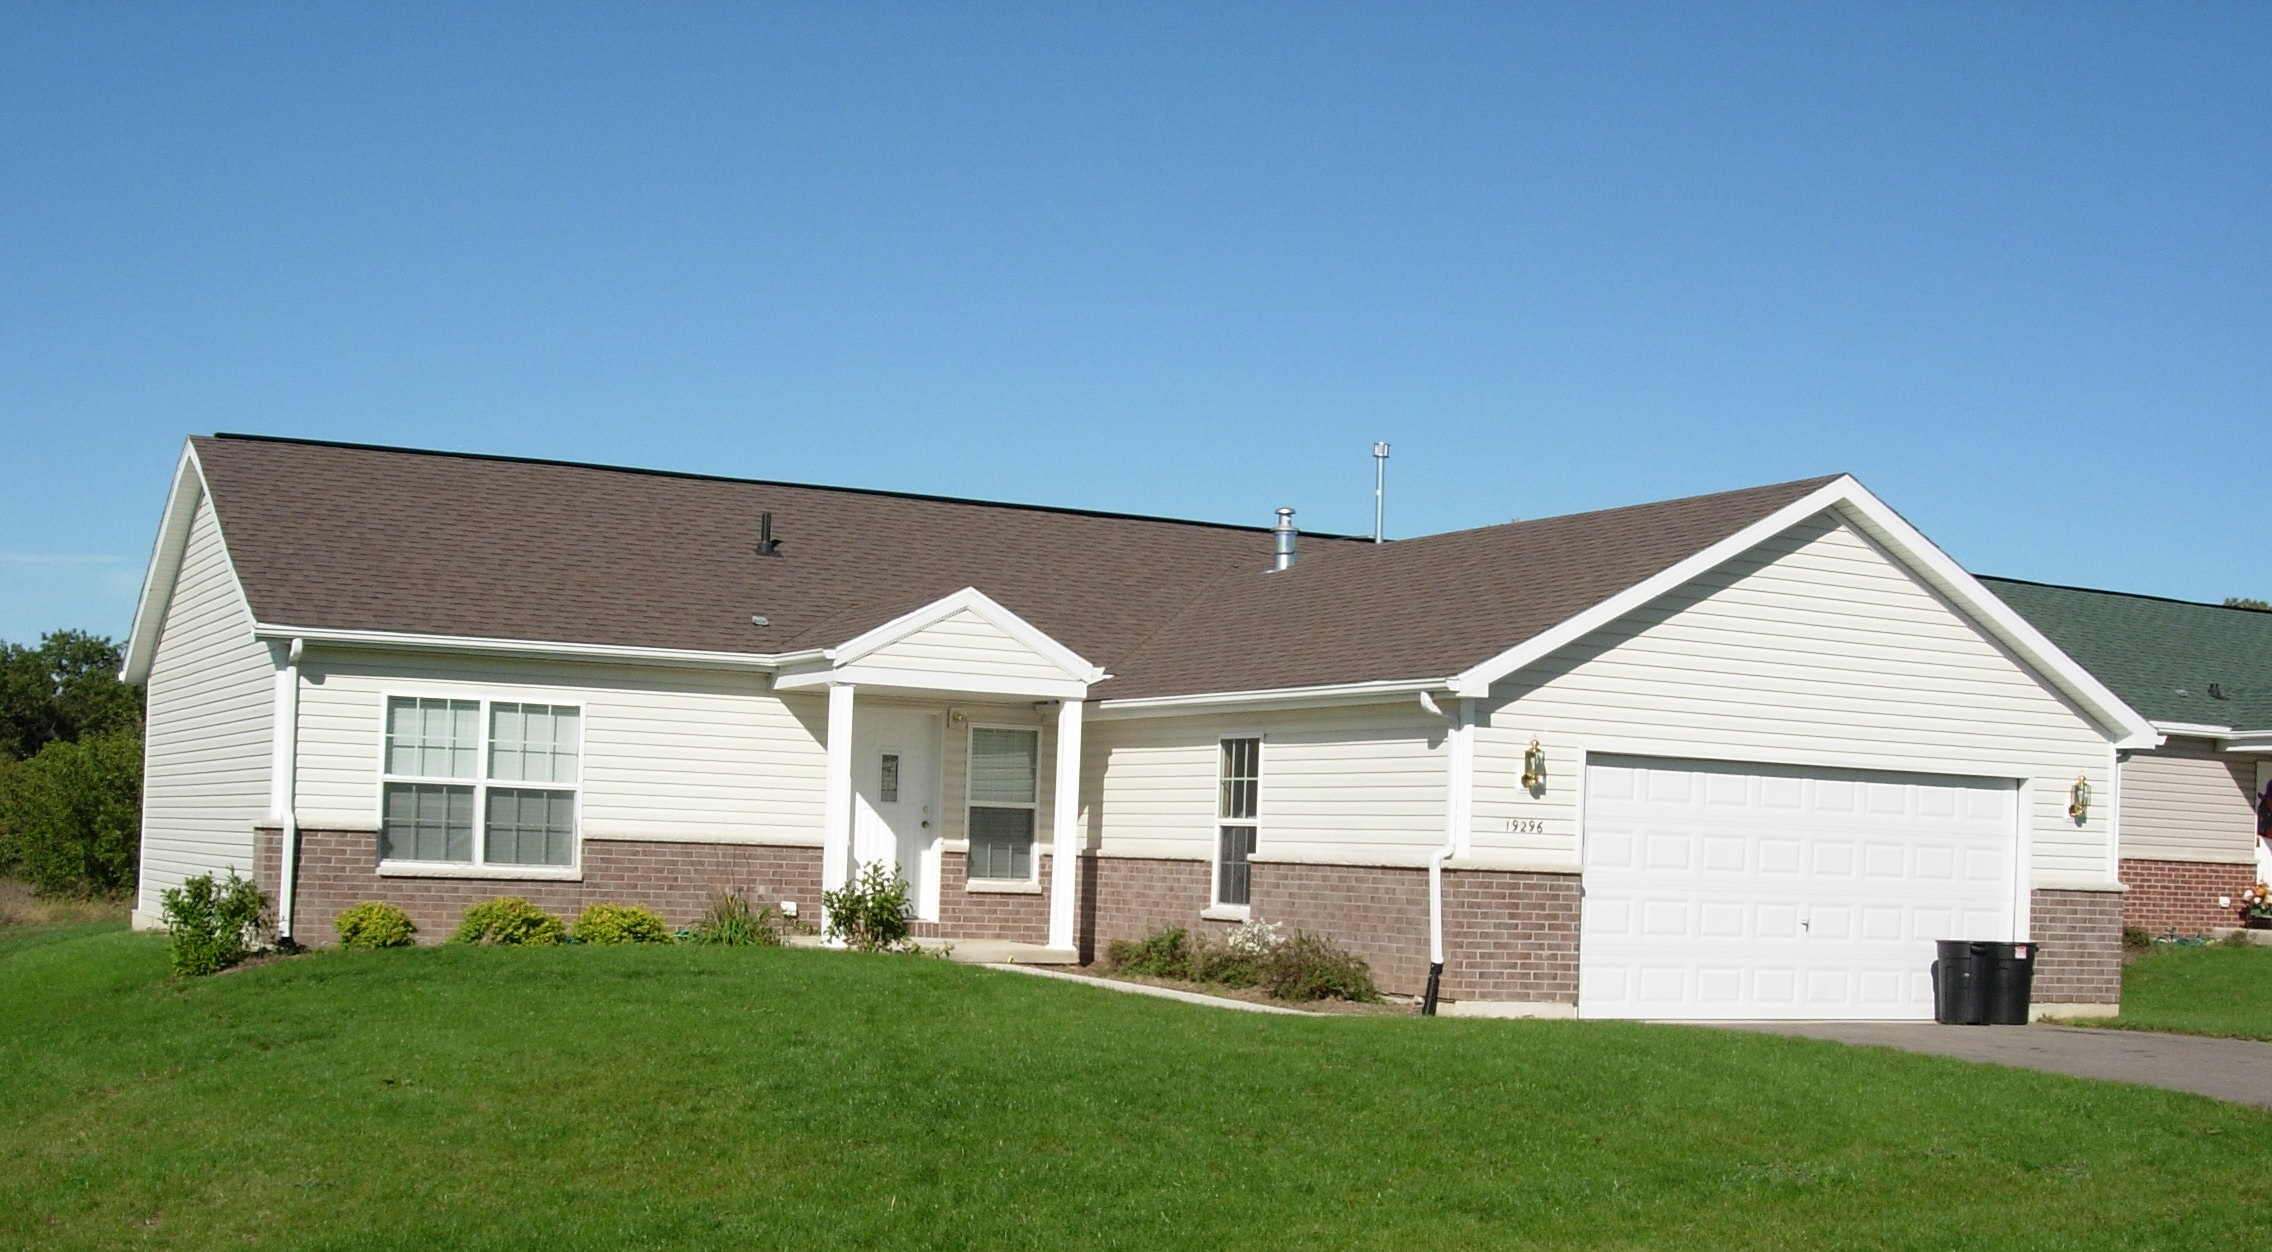 Image of Badger Ridge Homes in East Dubuque, Illinois